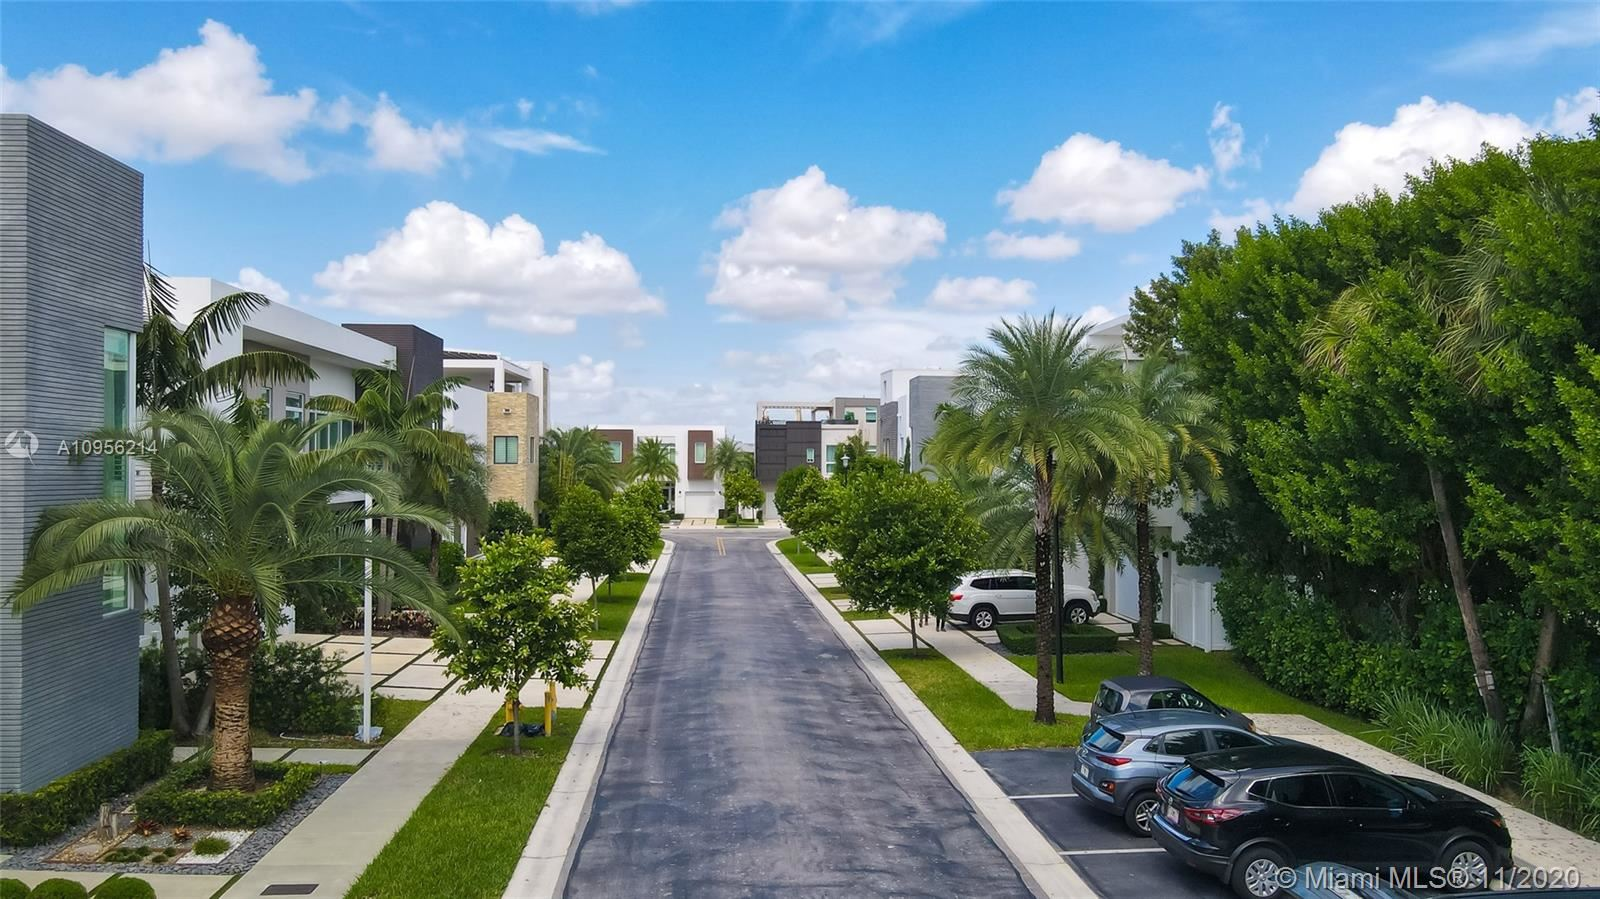 105TH AVE NW 6819 NW, Doral, FL 33178 - #: A10956214